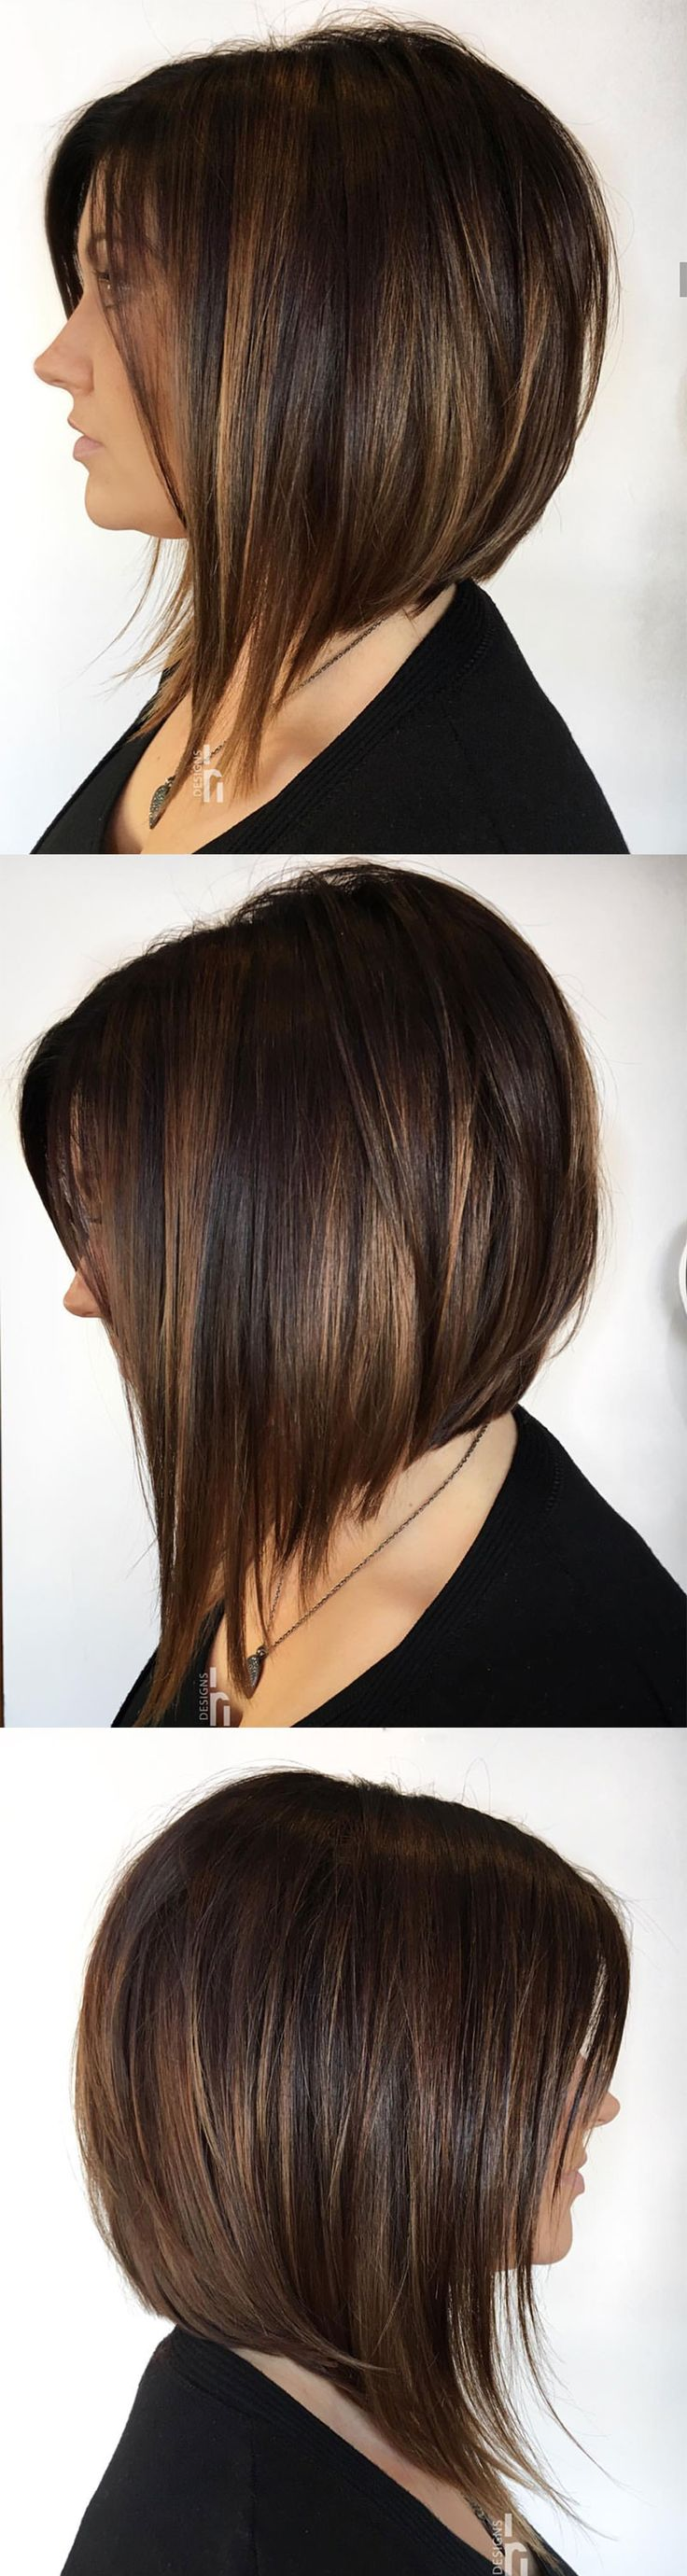 the 25+ best long angled bobs ideas on pinterest | long angled